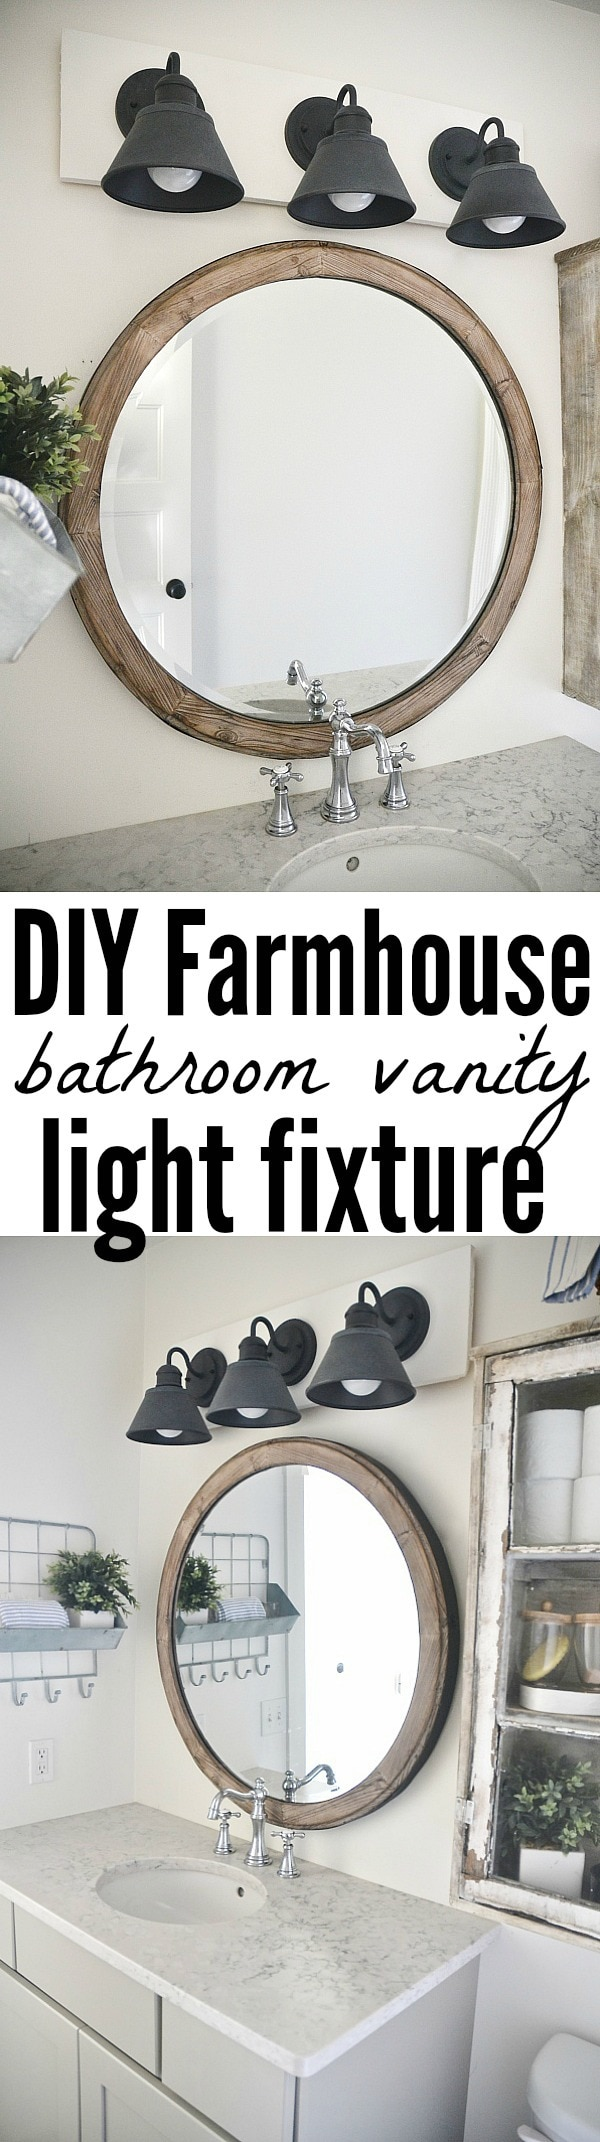 Diy farmhouse bathroom vanity light fixture - Round mirror over bathroom vanity ...